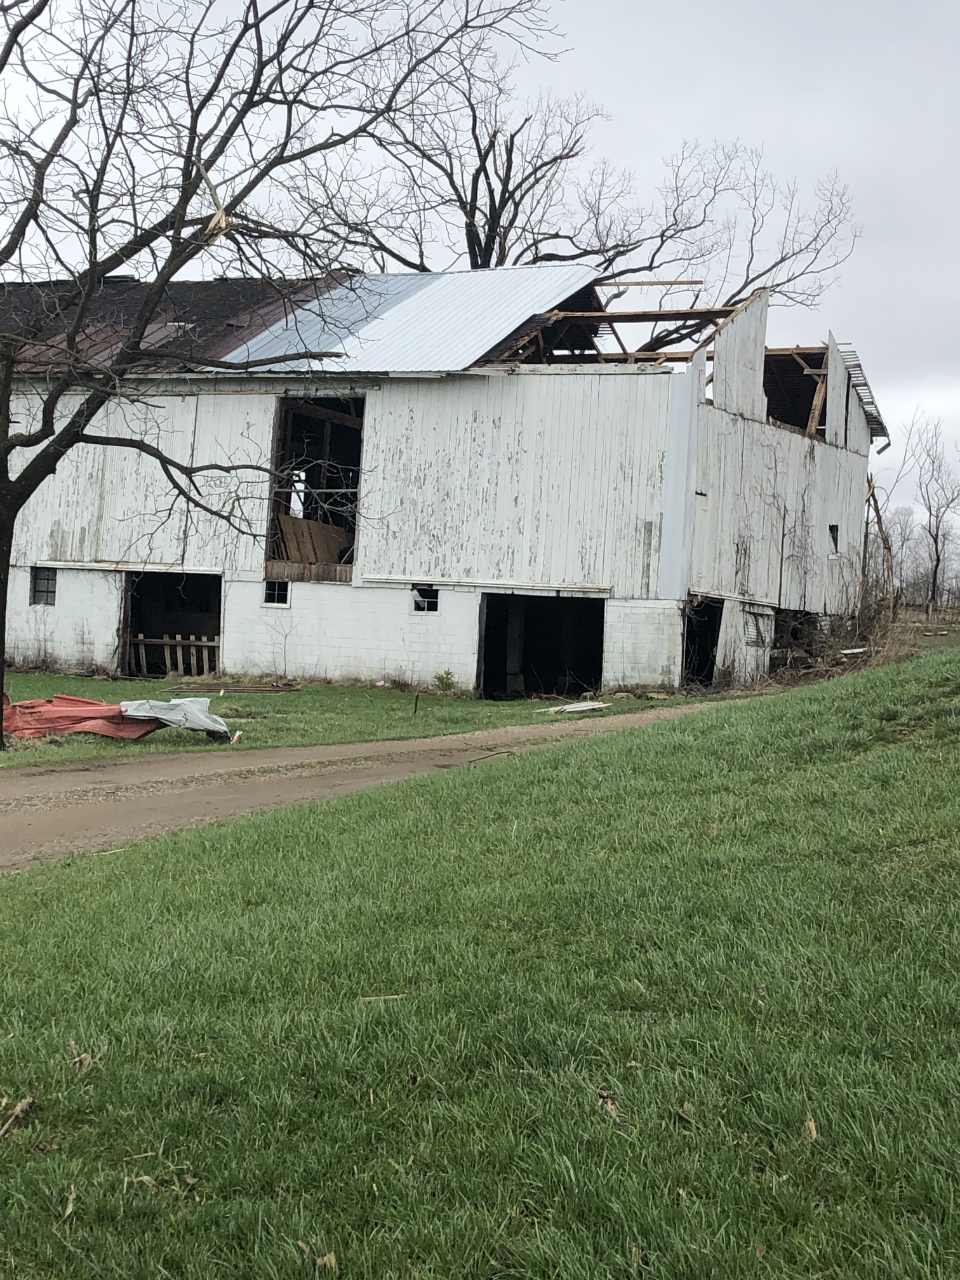 tornado damage near Shelby, OH April 14, 2019